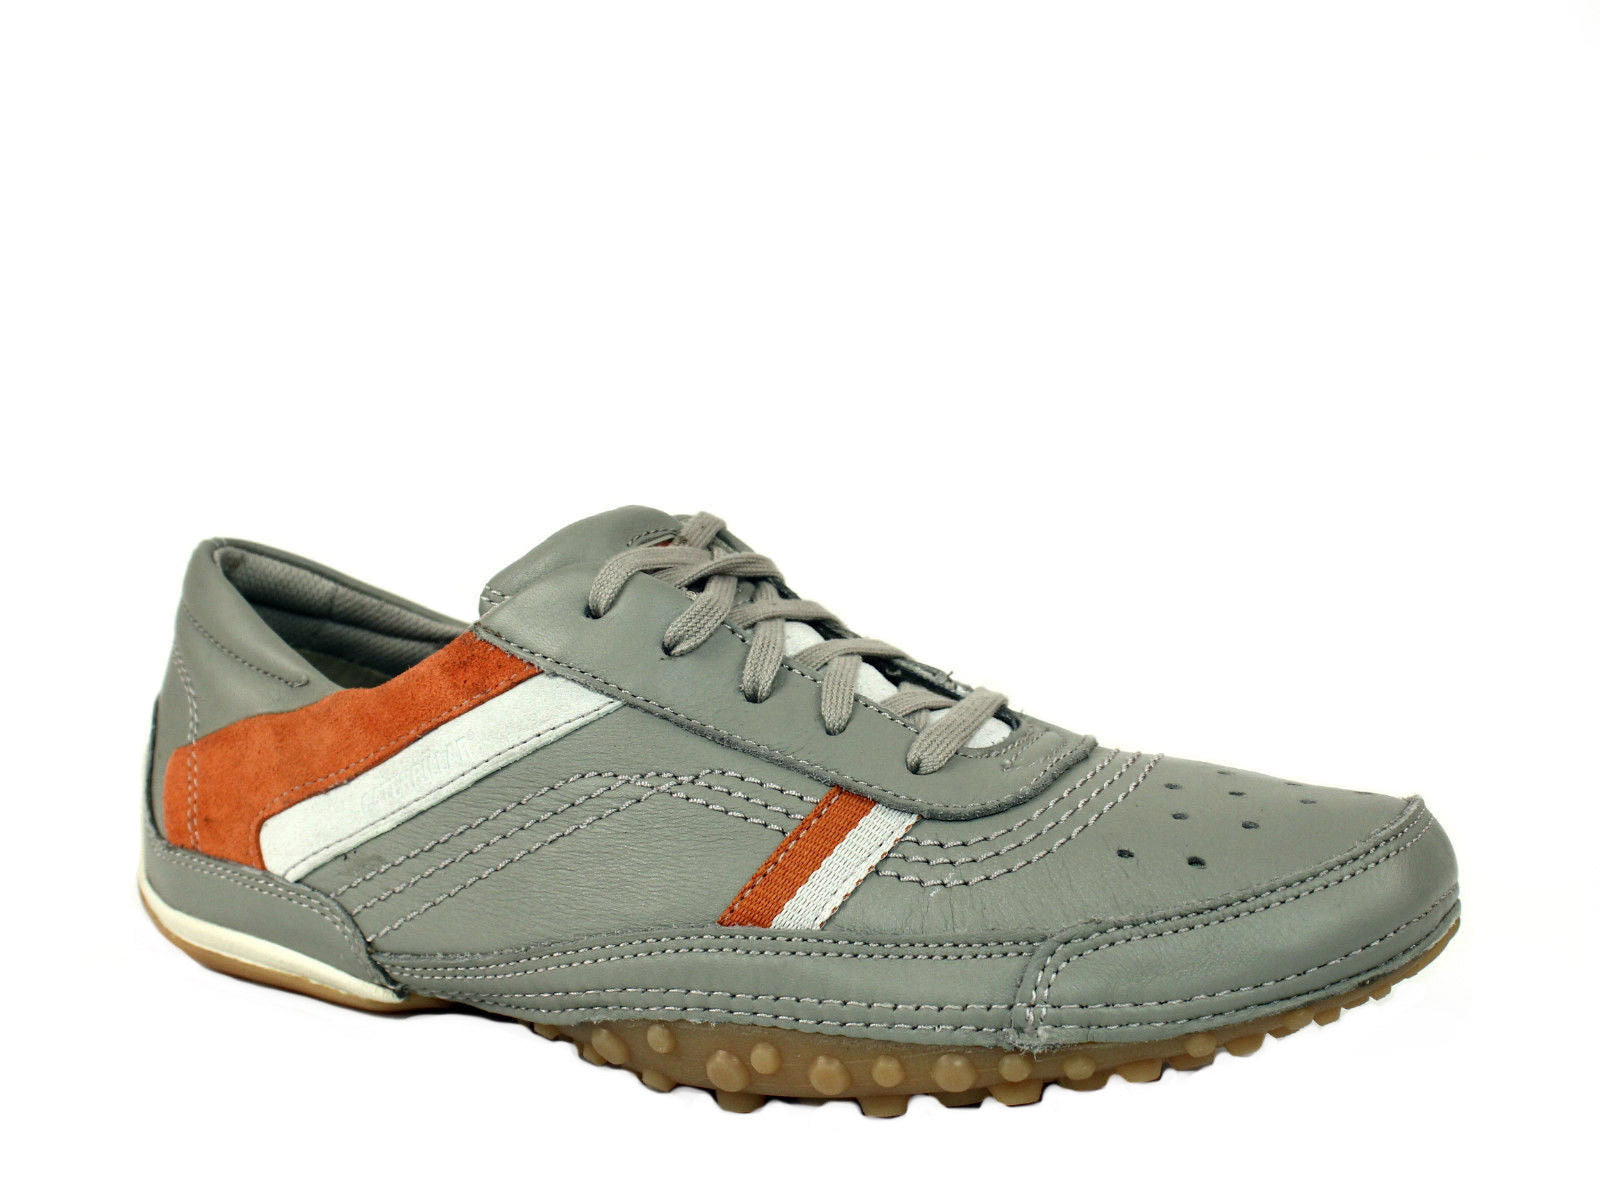 Caterpillar Dupri Oxford Grey Leather Men's Casual Shoes Sneakers